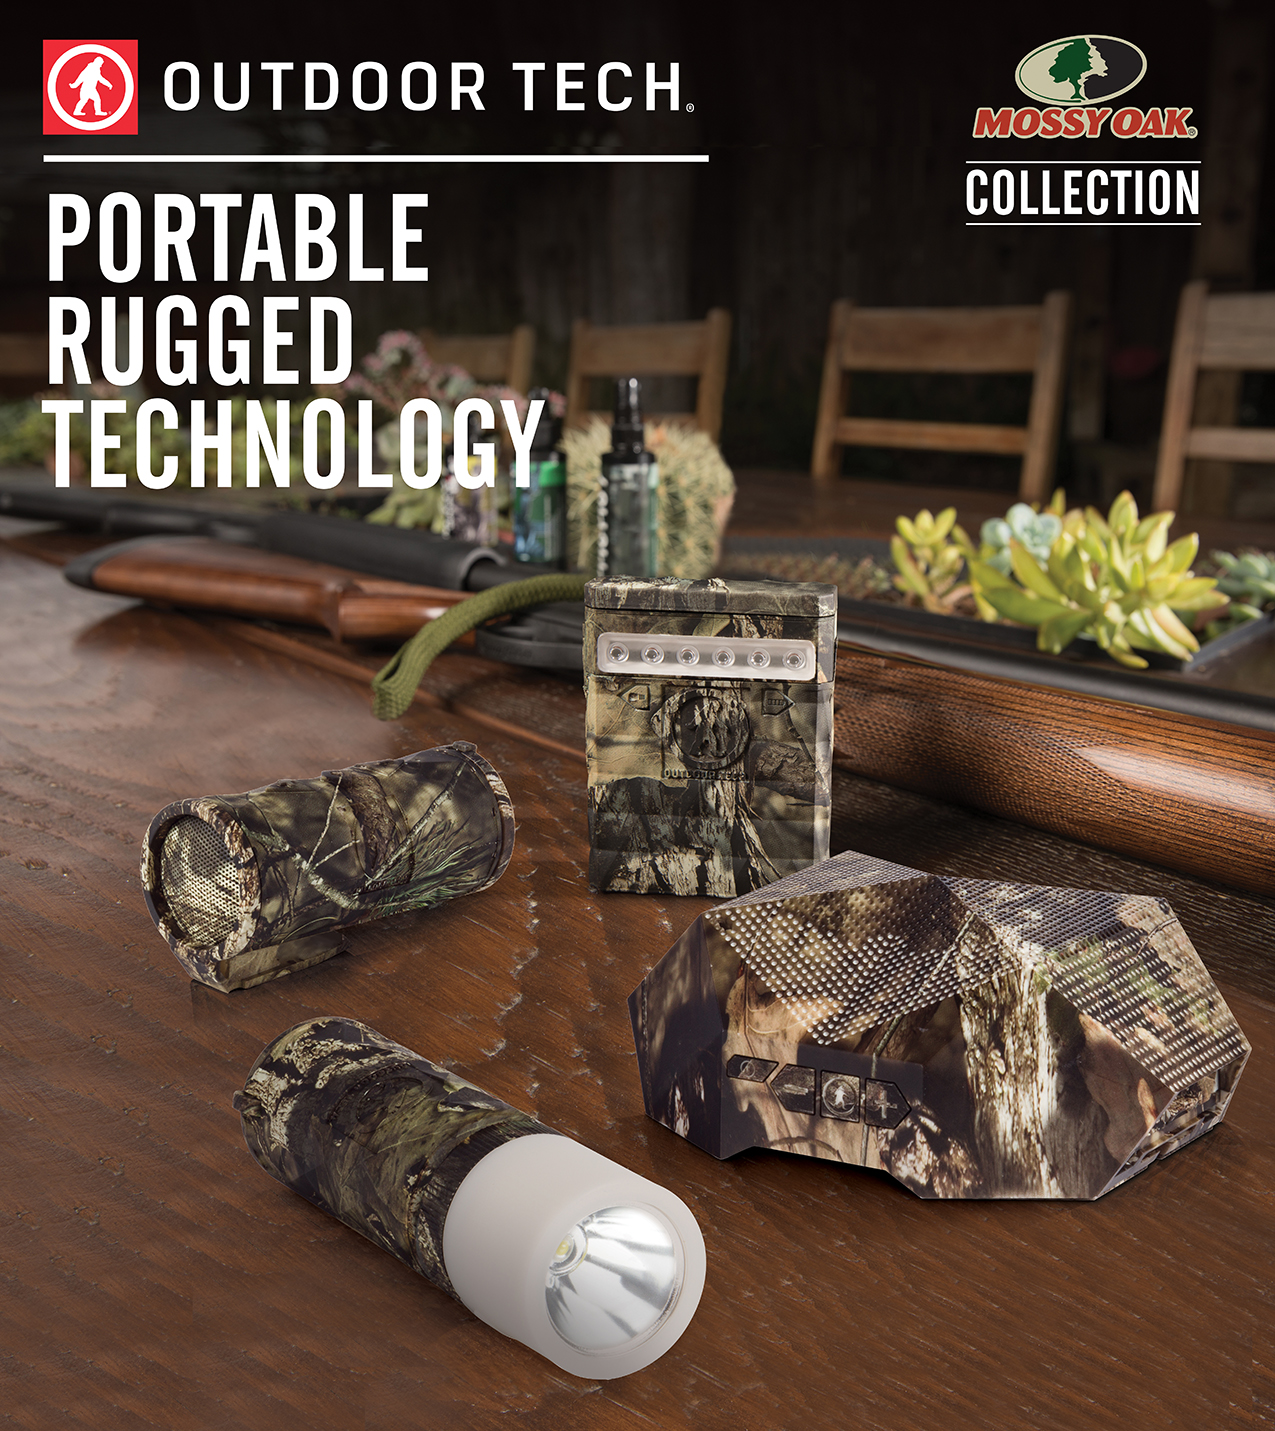 Outdoor Tech and Mossy Oak Collaboration Debut at Outdoor Retailer